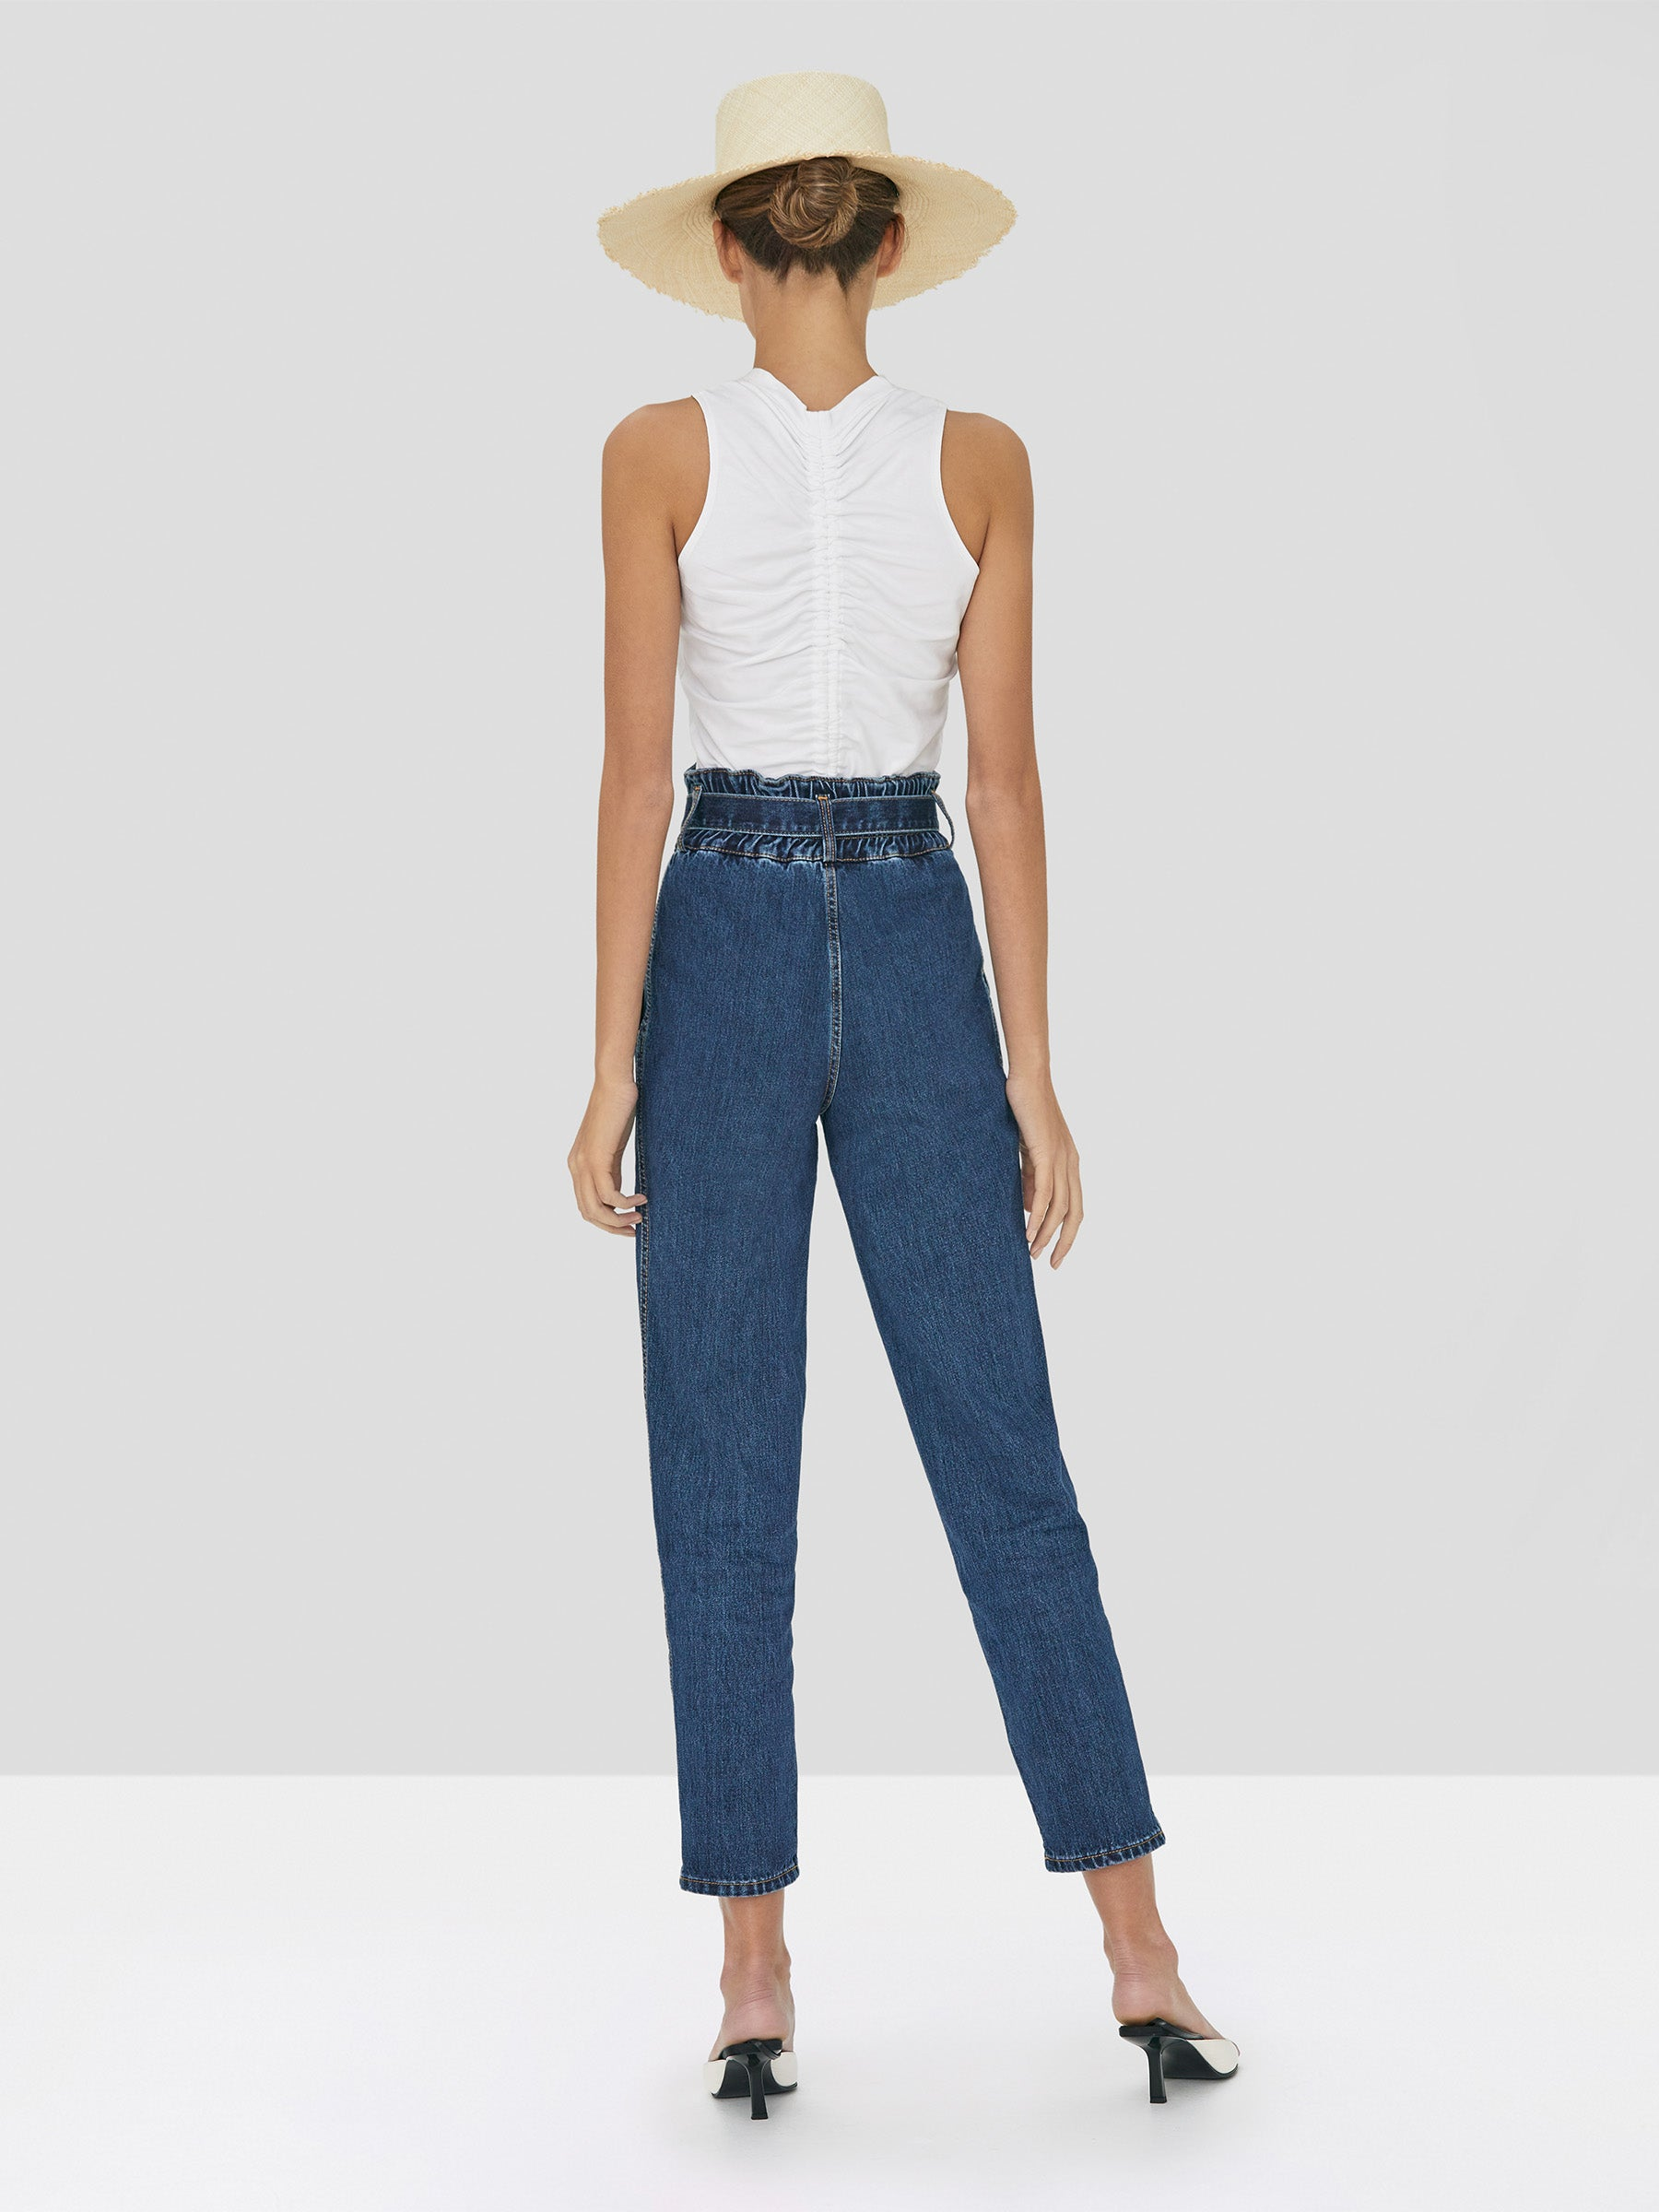 Alexis Teo Top in White and Stannis Denim Pant in Washed Denim from Spring Summer 2020 - Rear View